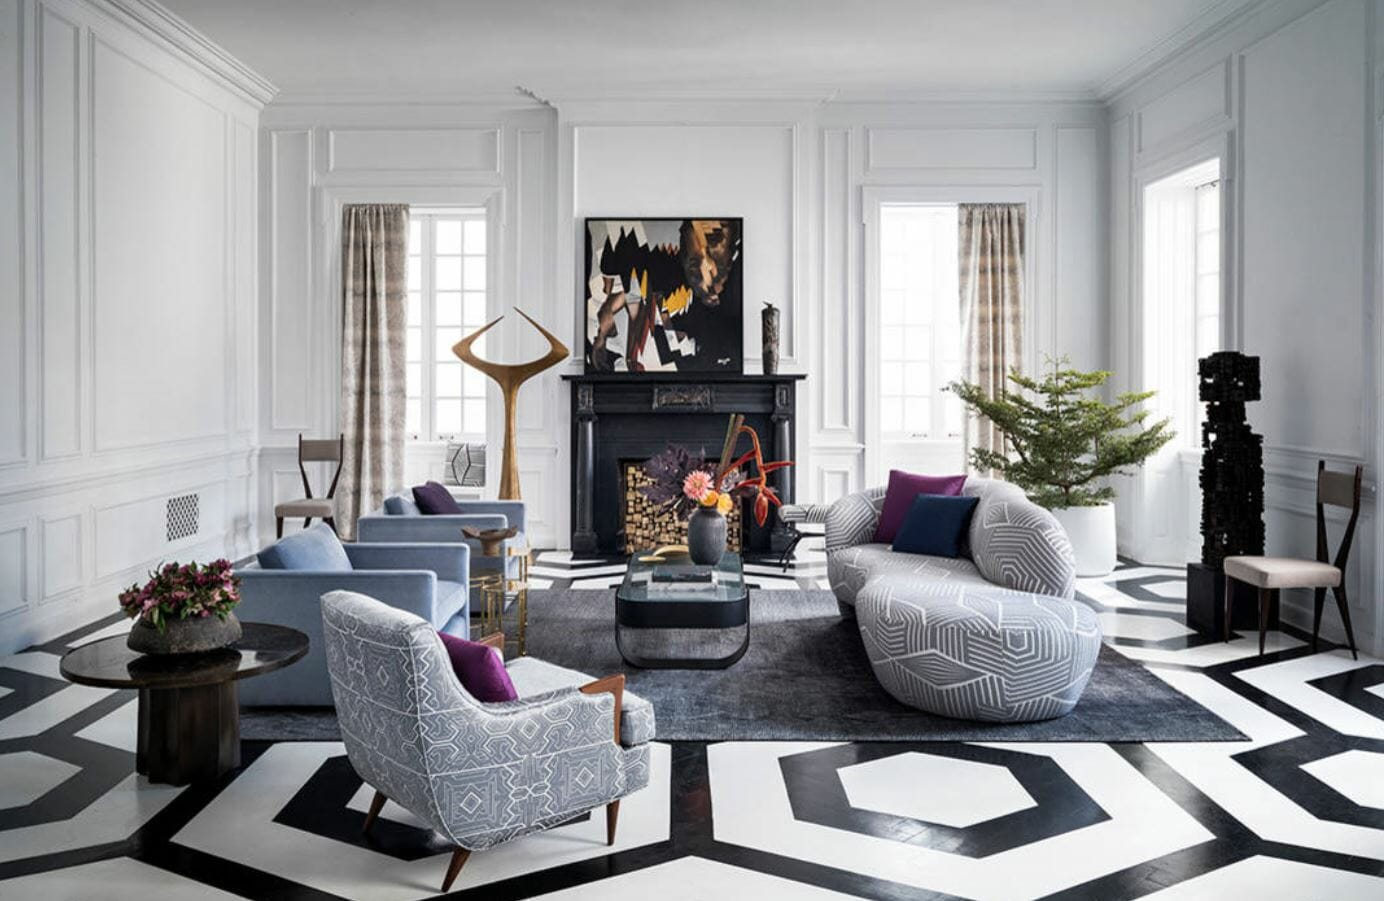 Interior Design Trends For 2019: 7 Best Winter 2019 Interior Design Trends To Try In Your Home